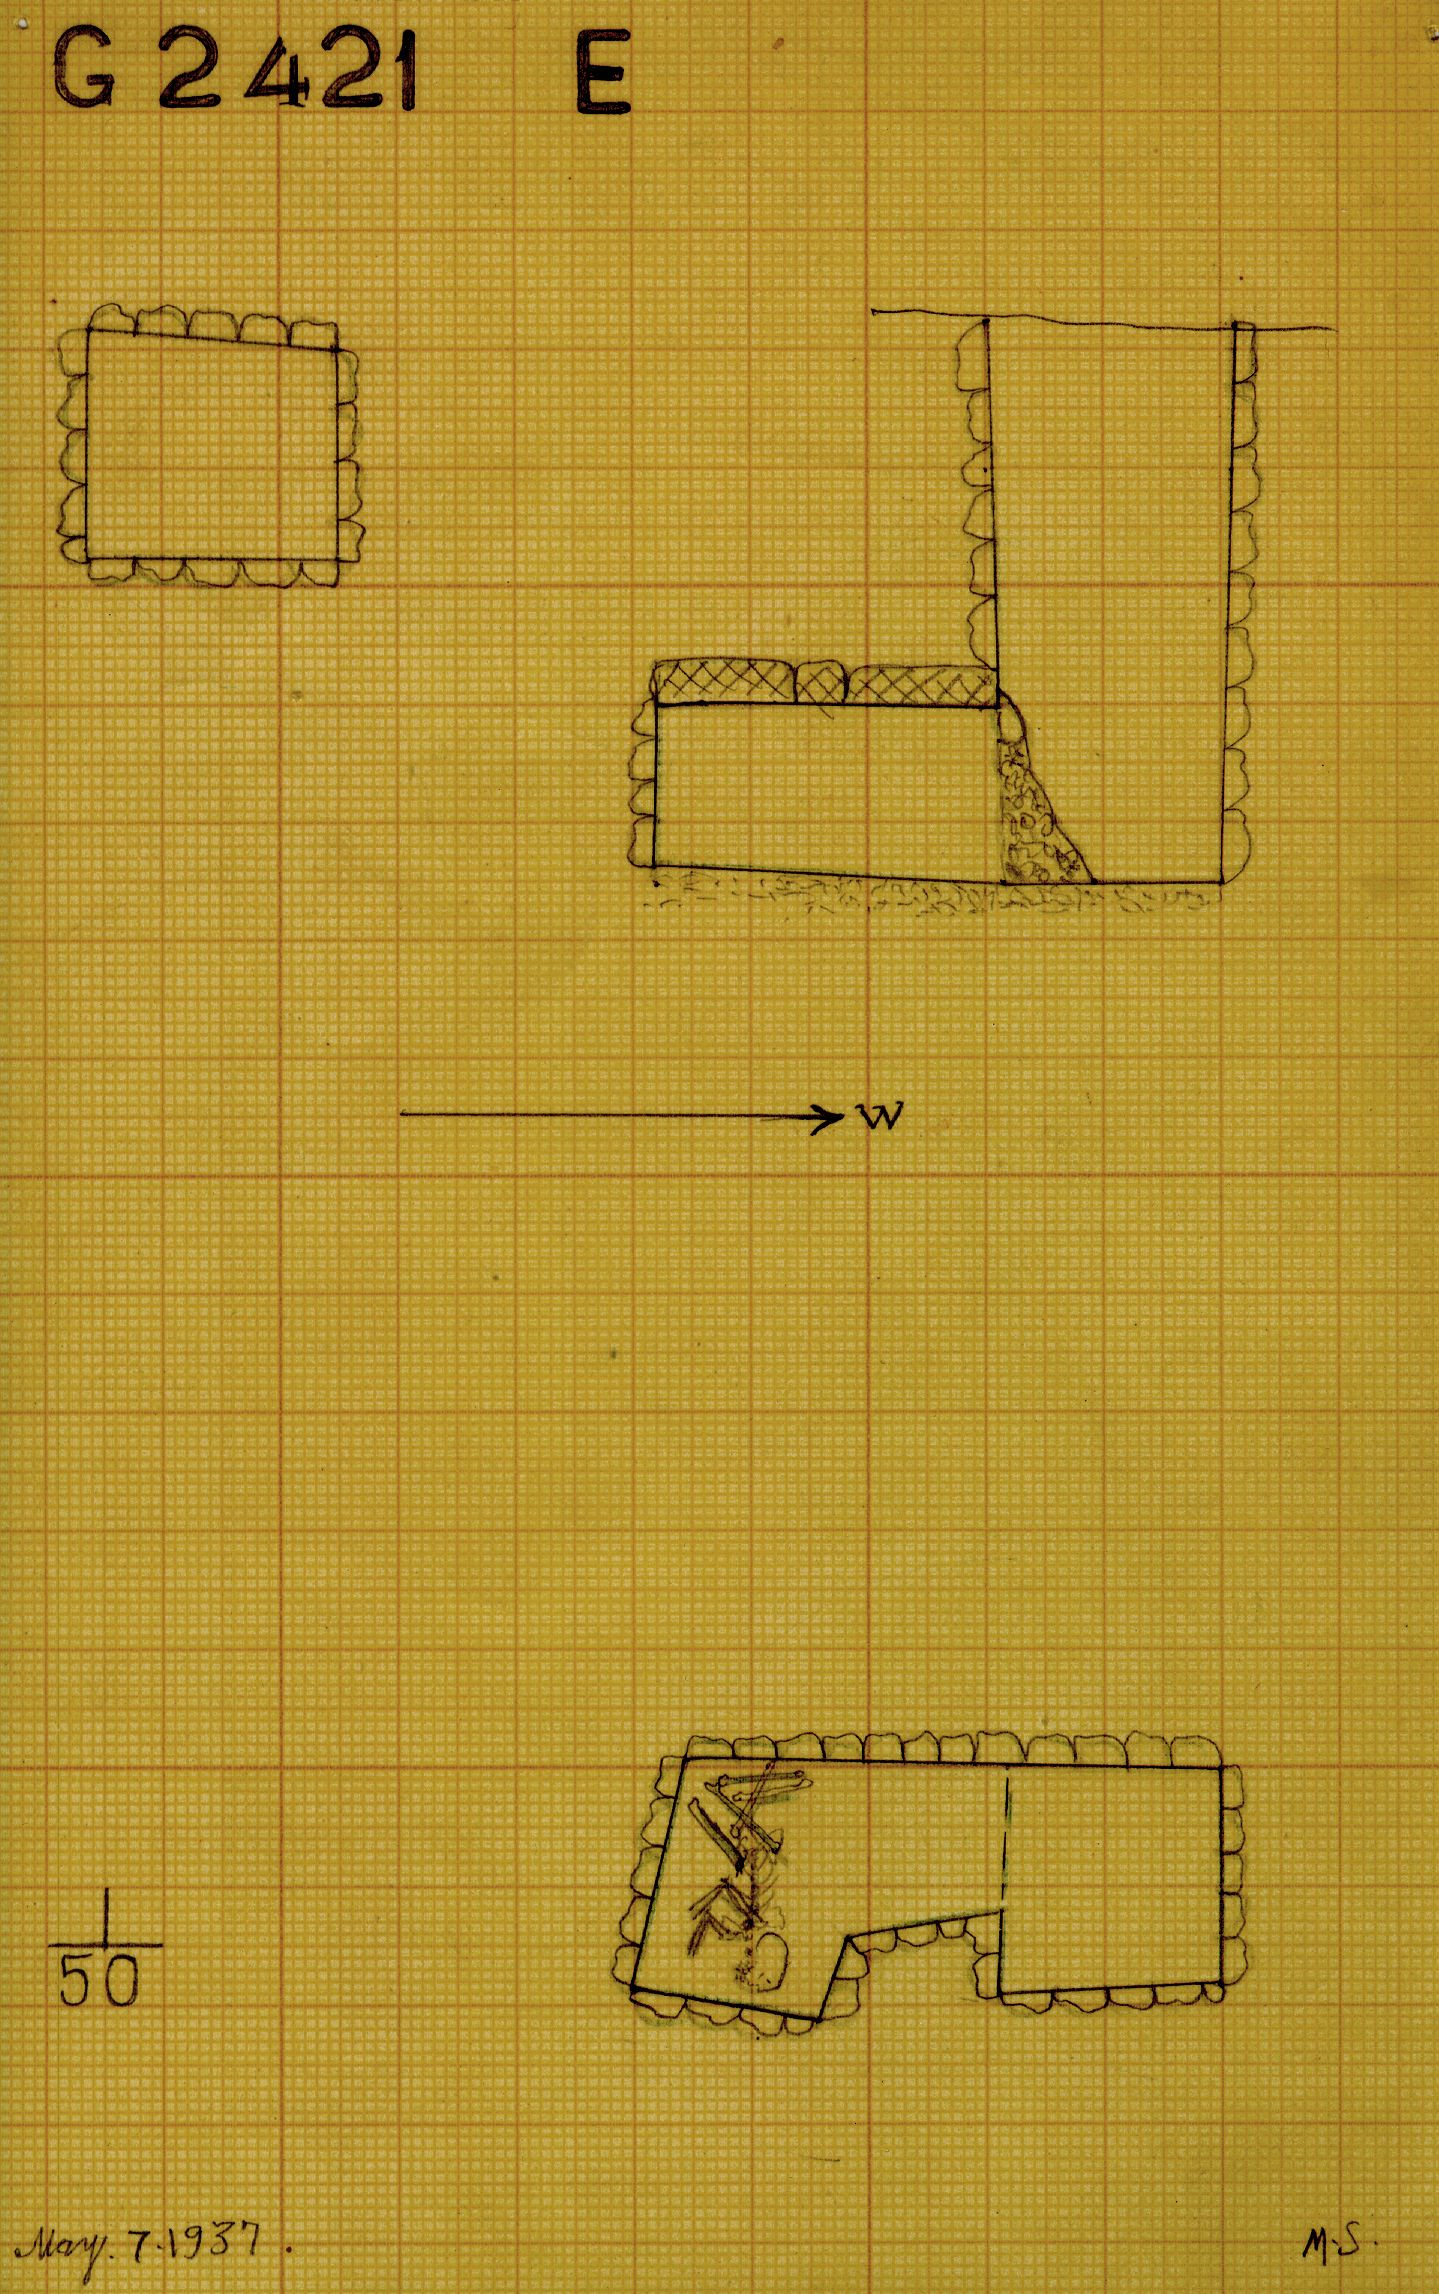 Maps and plans: G 2421, Shaft E